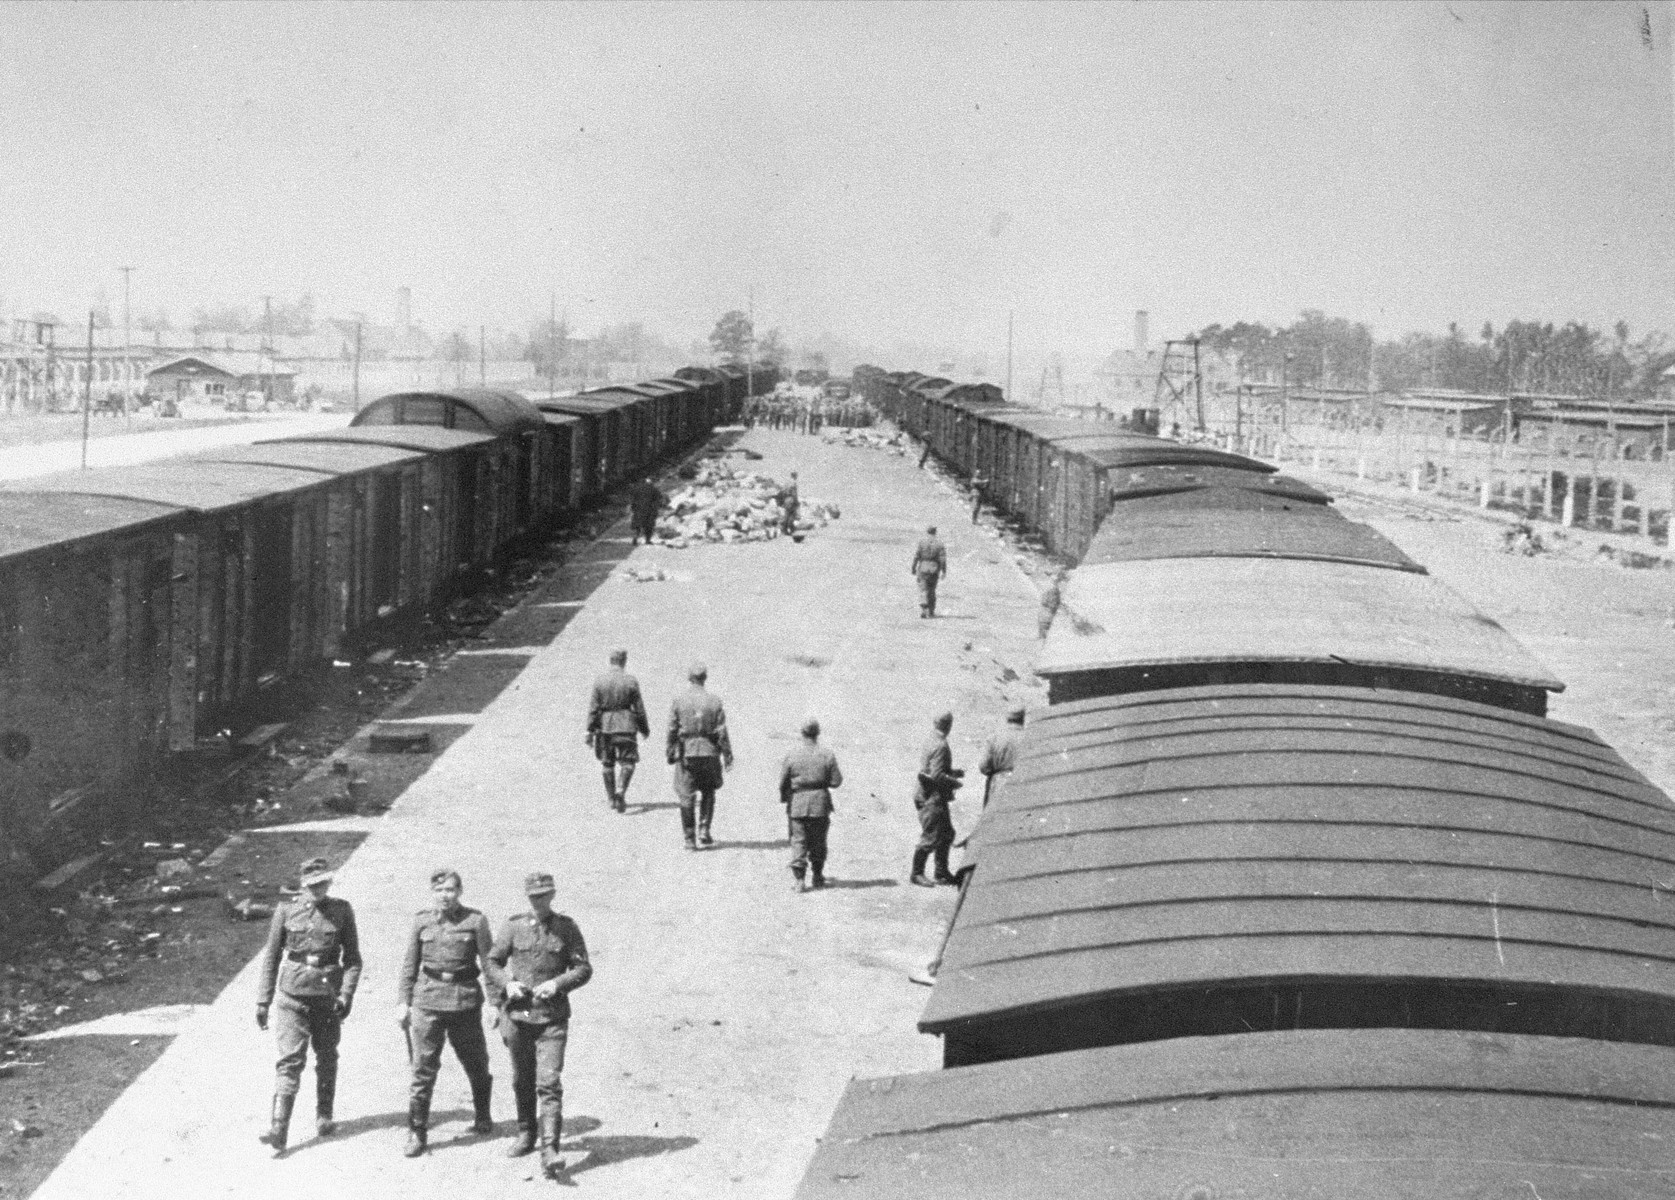 SS guards walk along the arrival ramp at Auschwitz-Birkenau.  The Birkenau arrival ramp was completed only weeks before this photo was taken.  Formerly the deportation trains arrived at a ramp that was half a mile away.  Crematoria II and III can be seen in the far background.